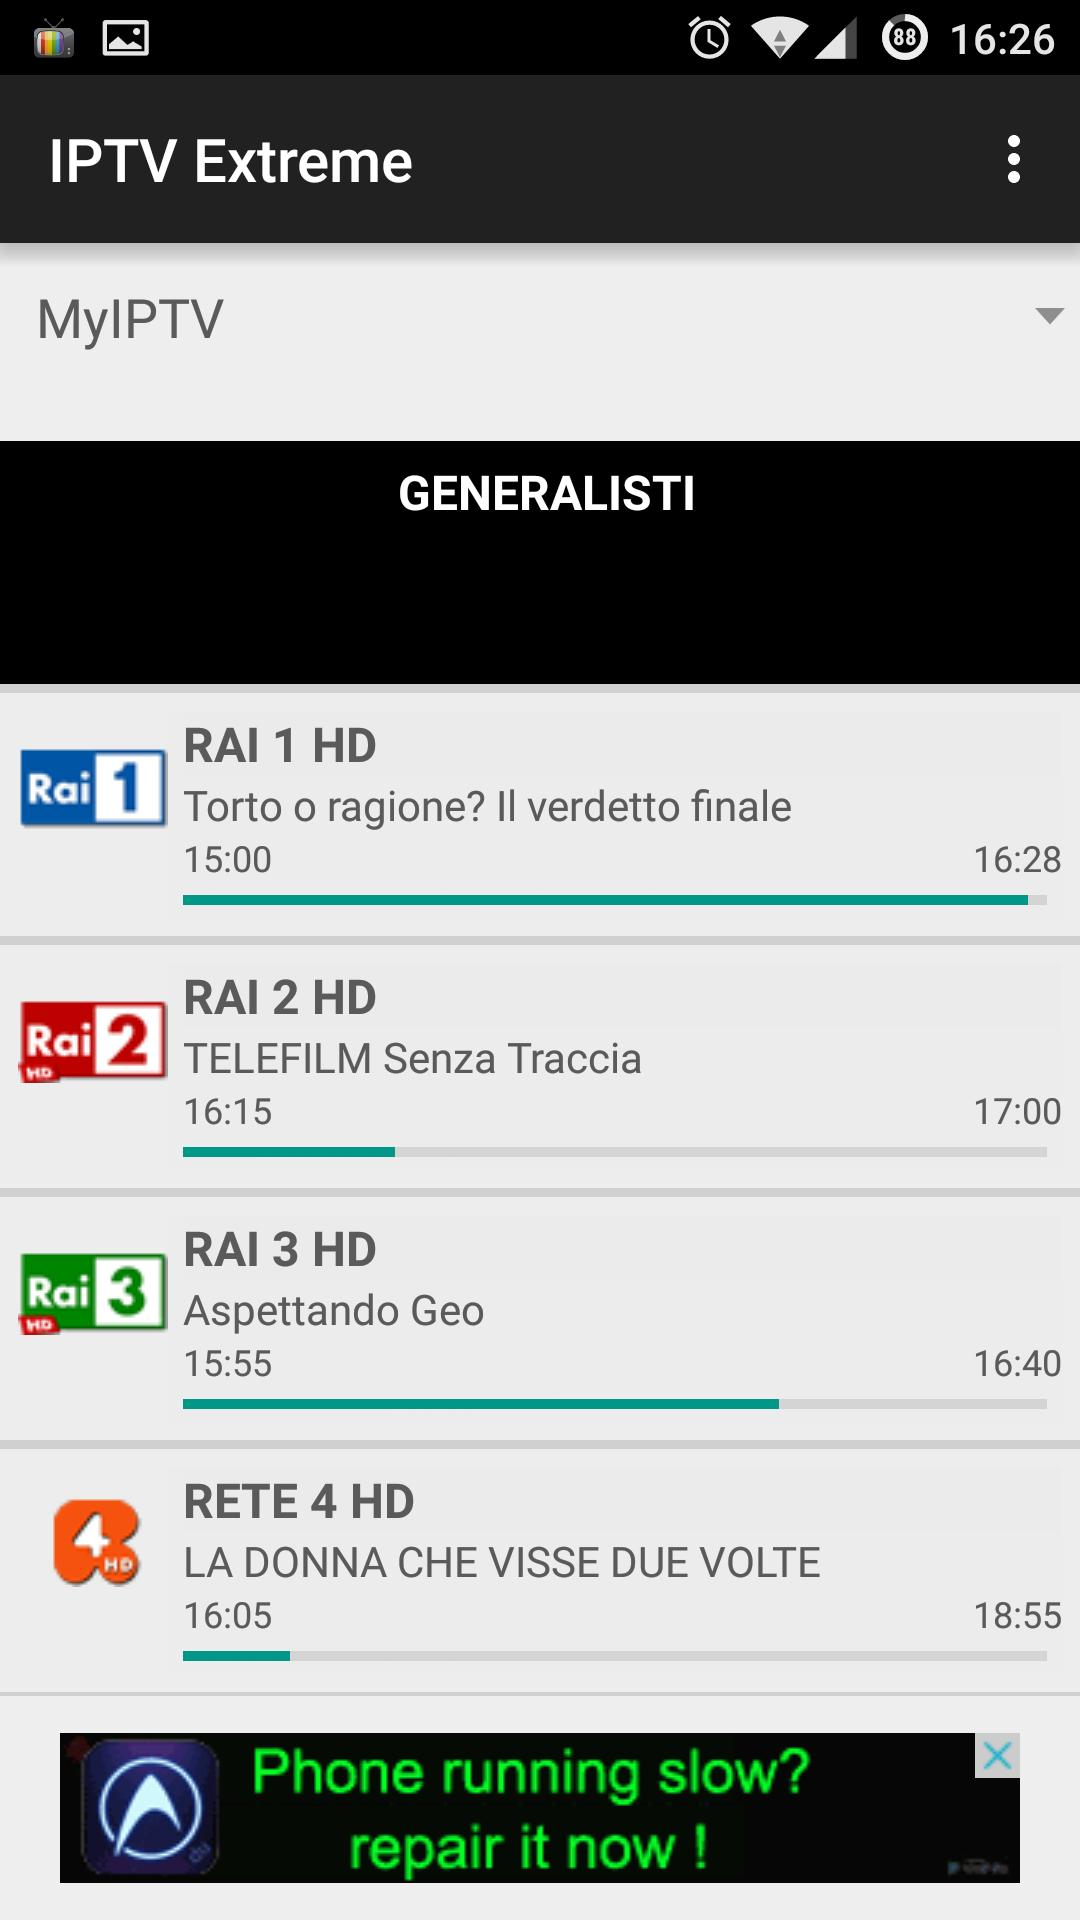 IPTV Extreme for Android - APK Download